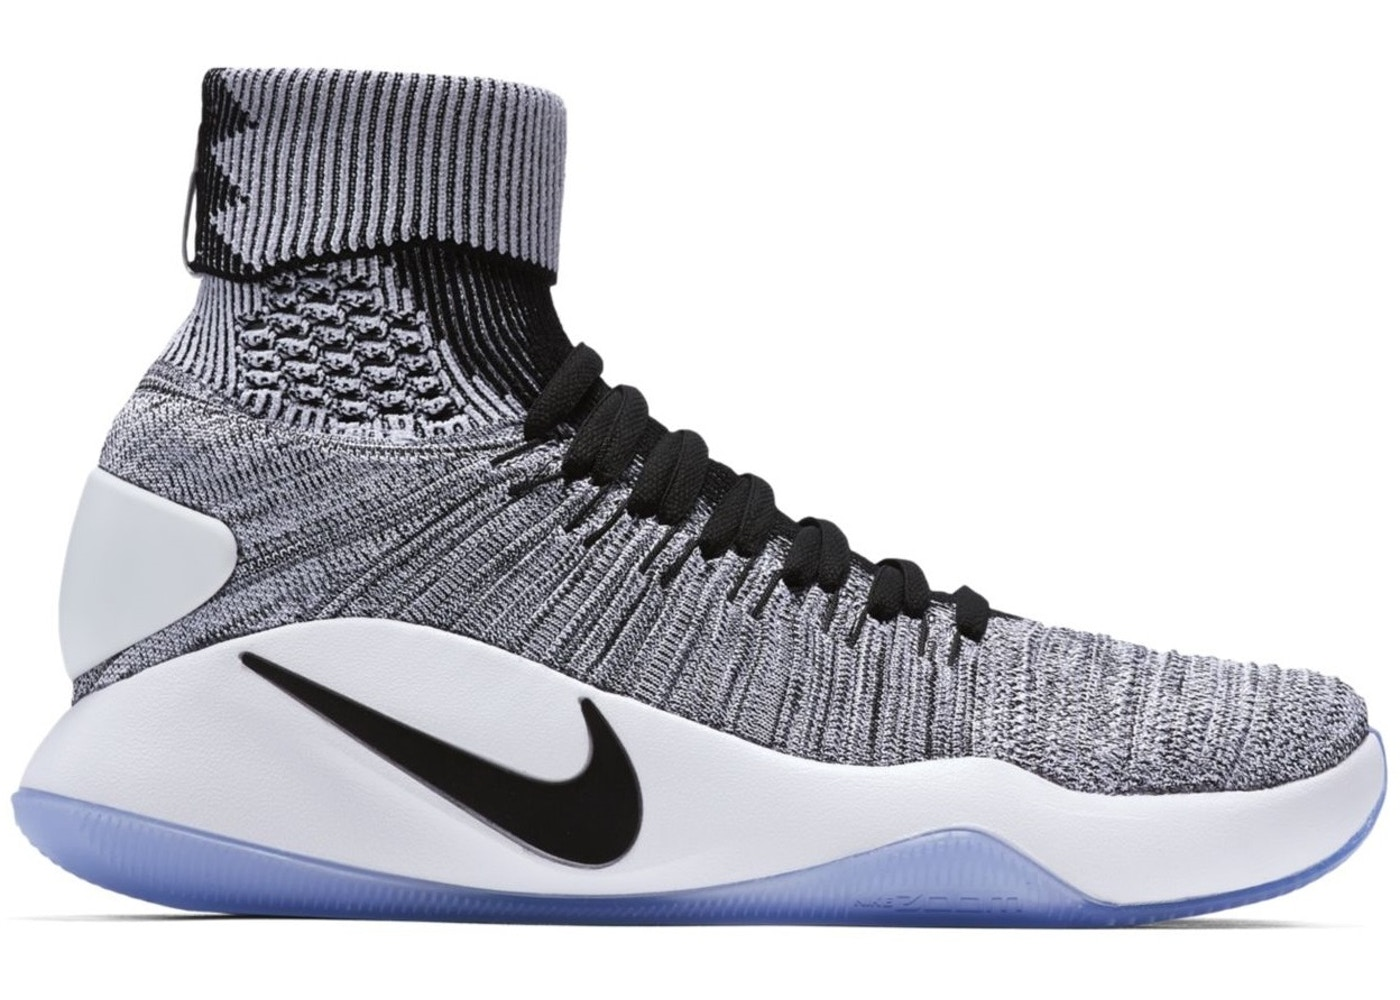 new product f5975 dc2a4 Nike Hyperdunk Flyknit 2016 Oreo - 843390-010